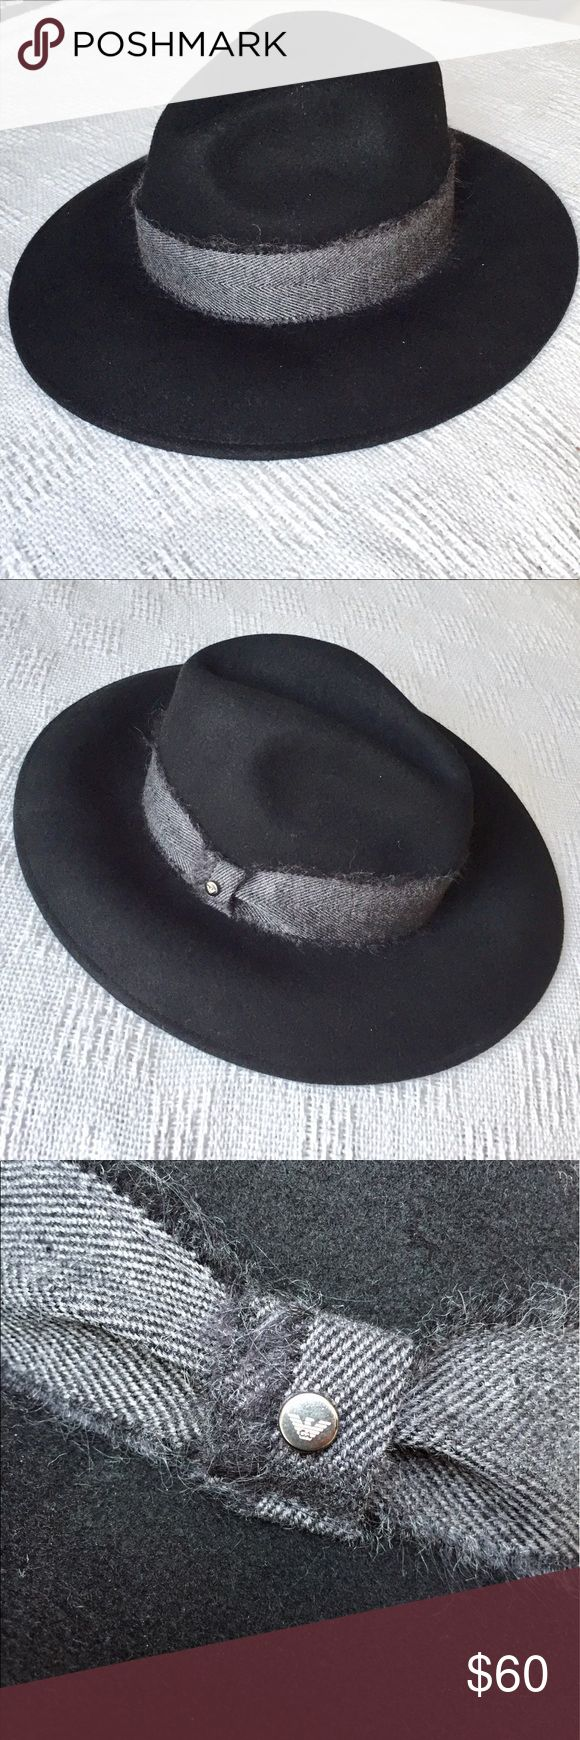 Emporia Armani Black hat with grey detail Stylish Emporio Armani black hat with freyed detail around the rim. Emporio button on side and cool look any season. Wool fabric, Made in Italy. Original. Emporio Armani Accessories Hats